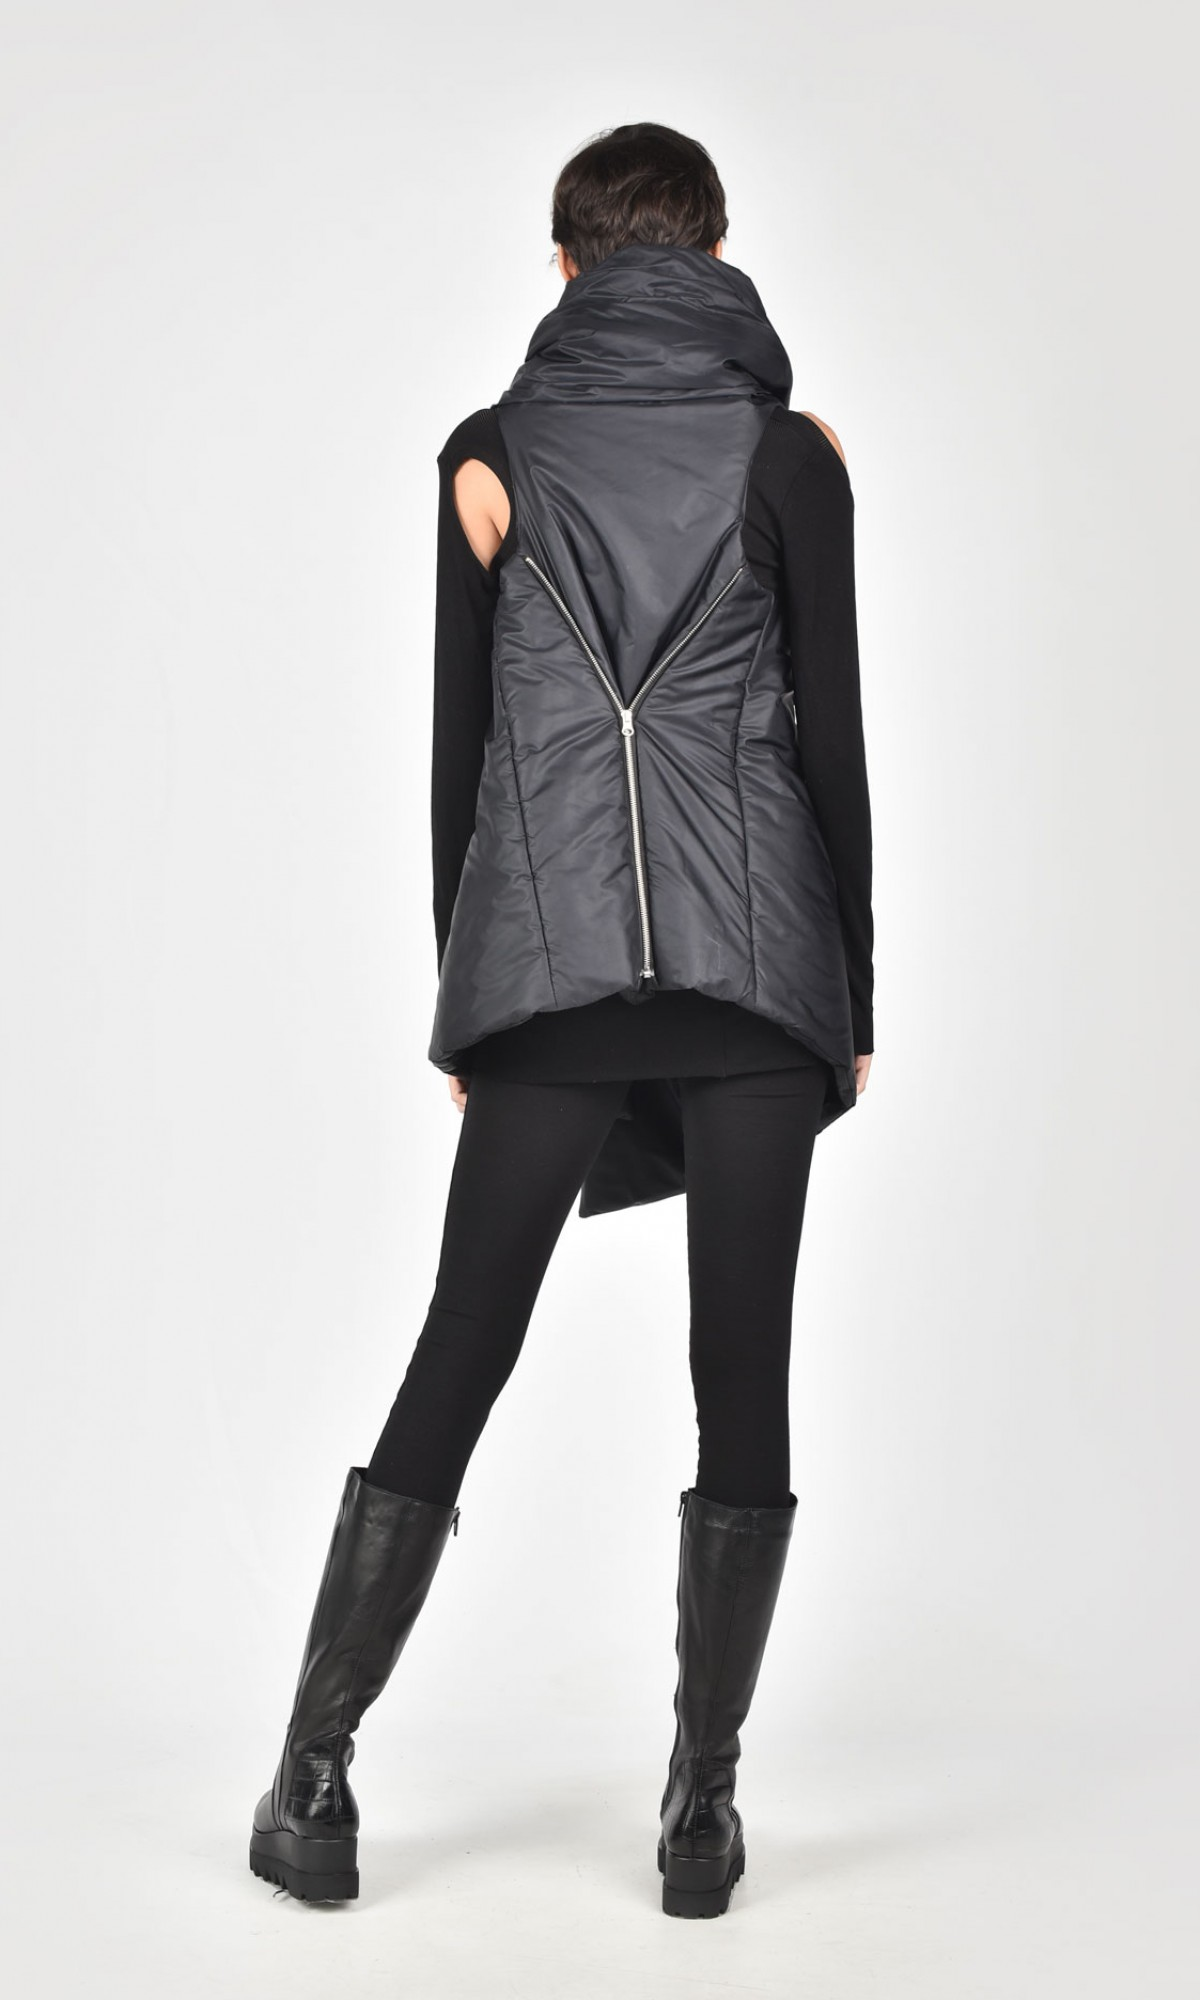 Asymmetric Black Sleeveless Quilted Vest A02518